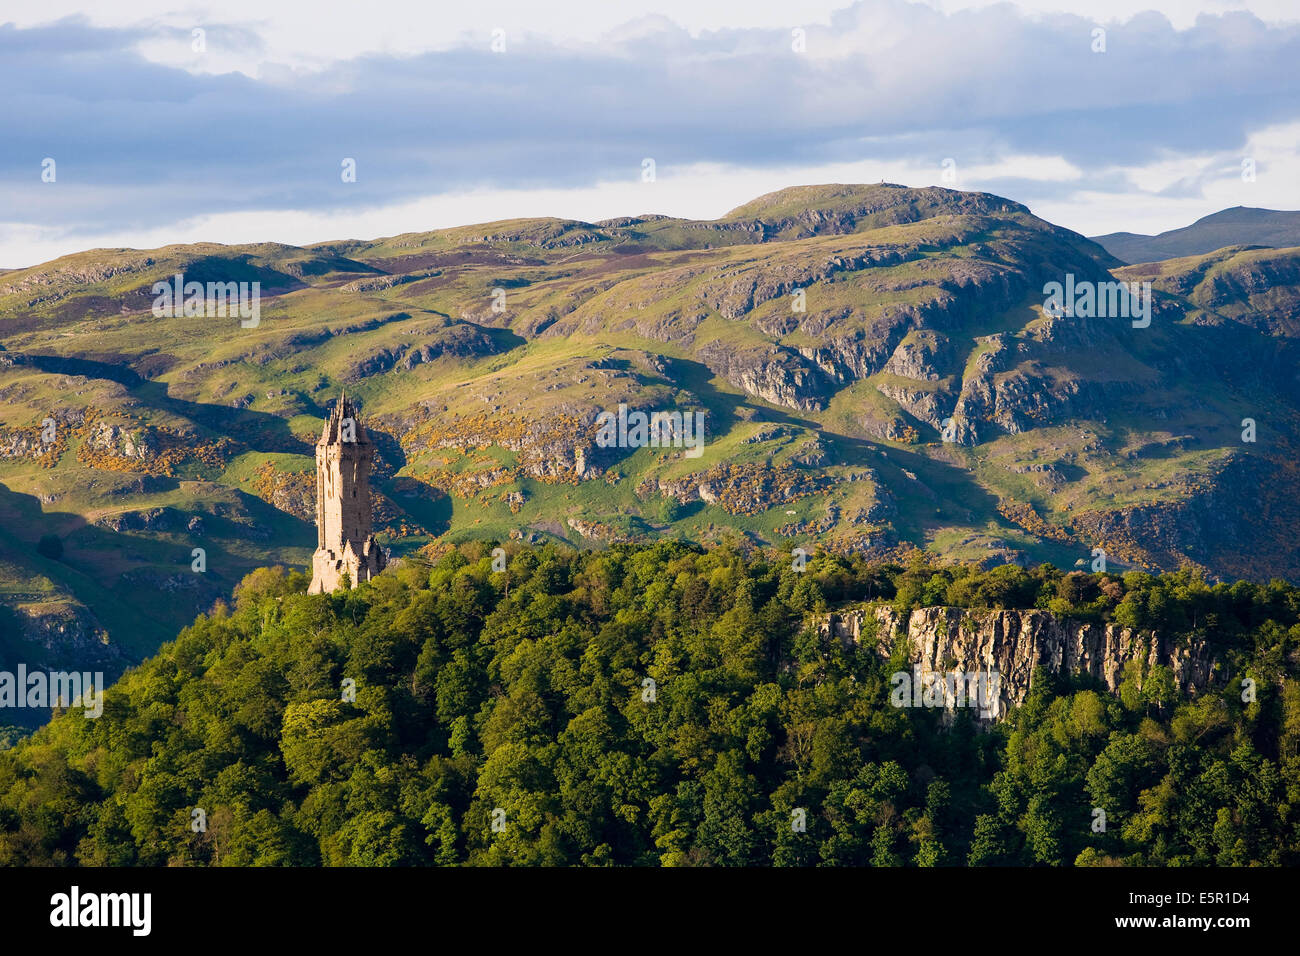 William Wallace Monument, Highlander heros from the 14th century, near Stirling, Scotland. - Stock Image